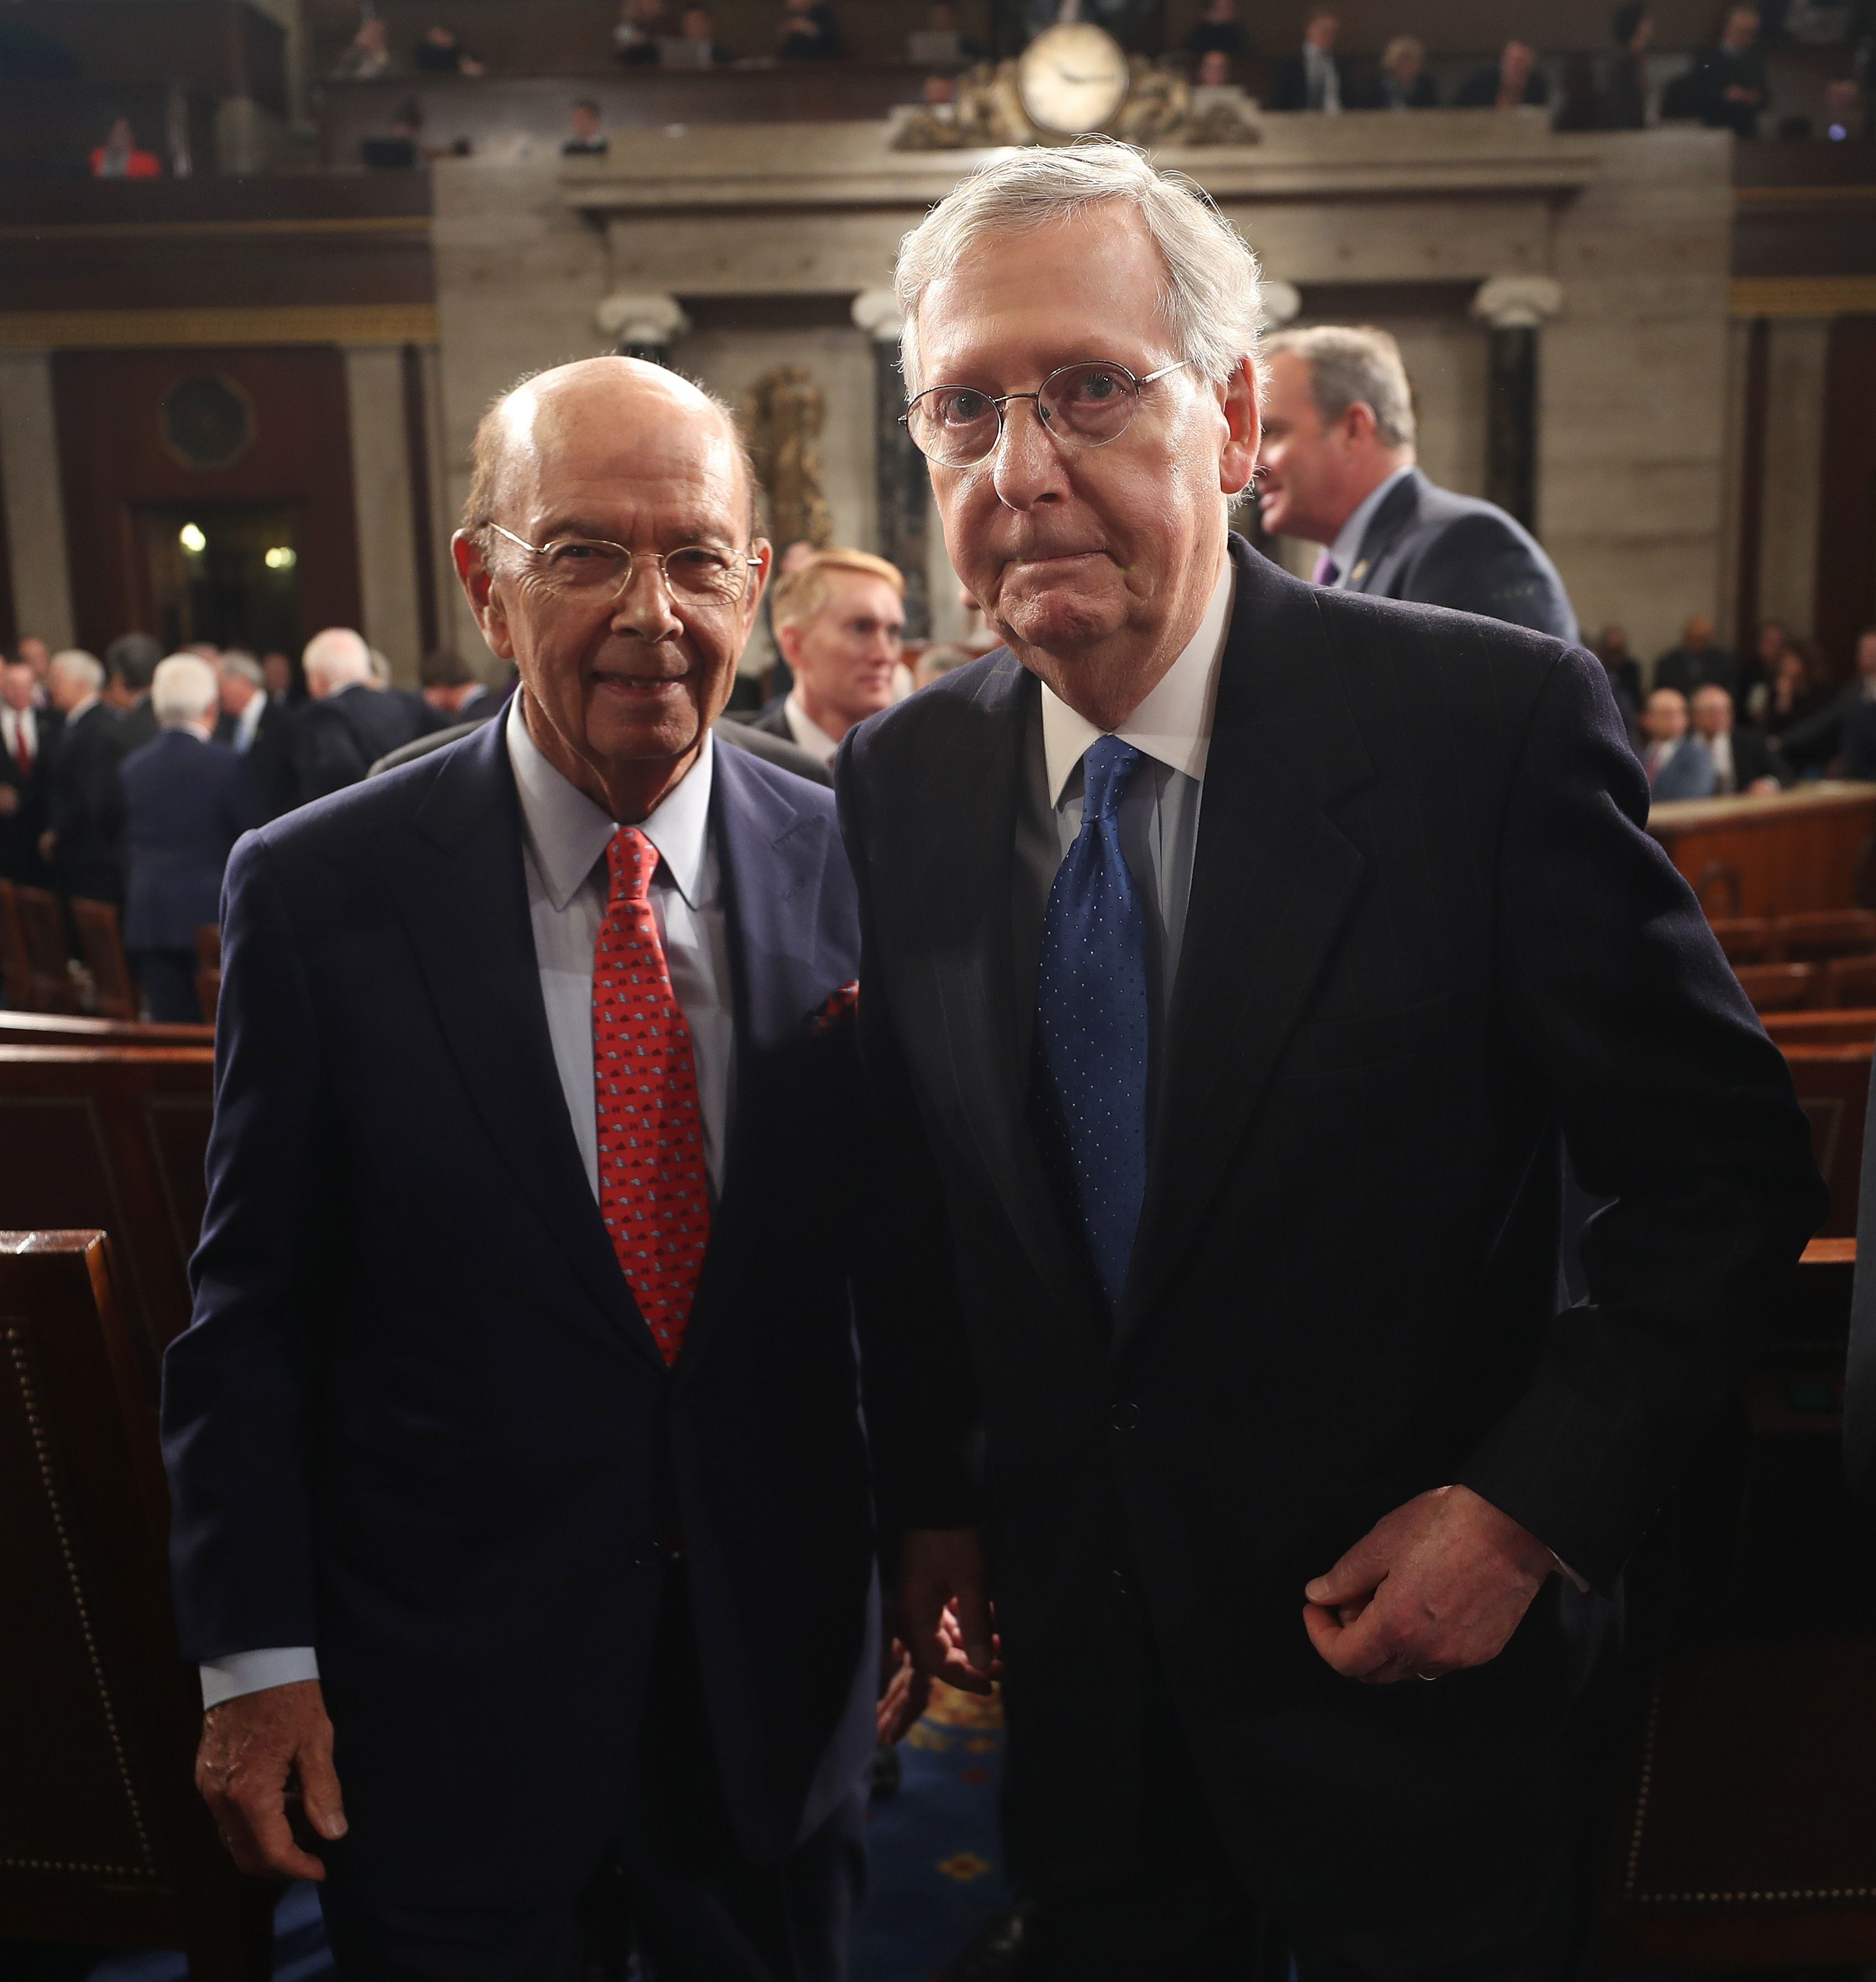 Secretary of Commerce Wilbur Ross (L) and Senate Majority Leader Mitch McConnell of Kentucky (R) depart after US President Donald J. Trump after delivered his first address to a joint session of Congress from the floor of the House of Representatives in Washington, DC, USA, 28 February 2017. / AFP / POOL / JIM LO SCALZO        (Photo credit should read JIM LO SCALZO/AFP/Getty Images)